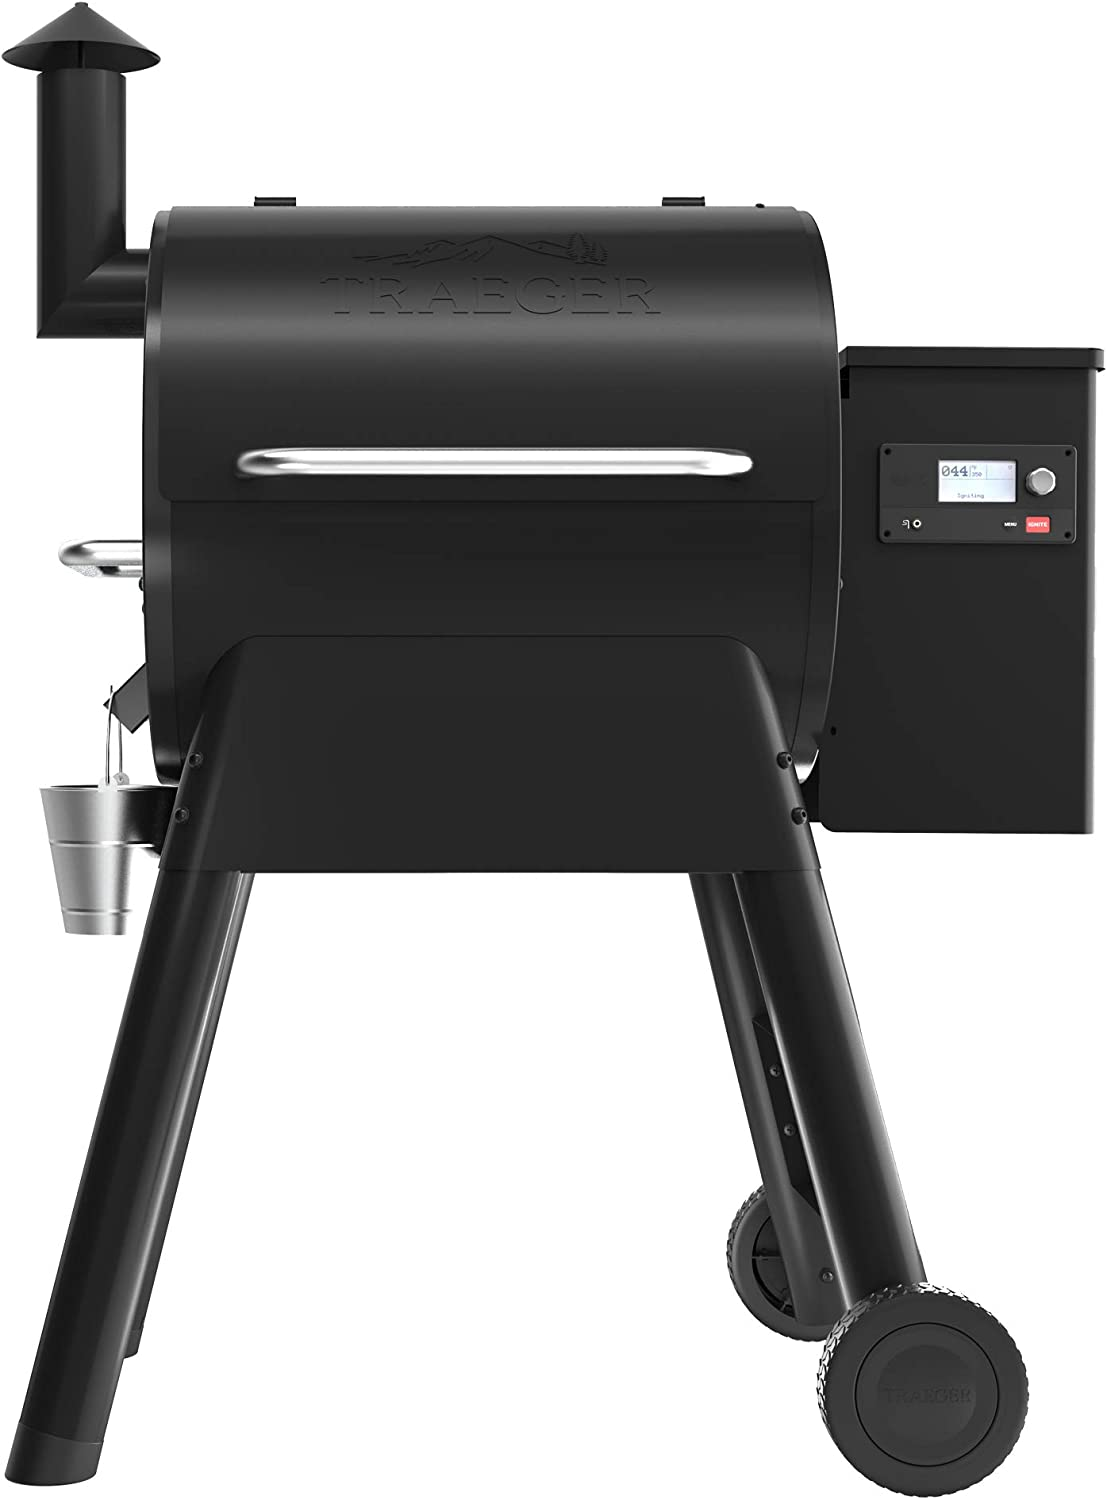 Traeger Grills Pro Series 575 Wood Pellet Grill and Smoker, Black